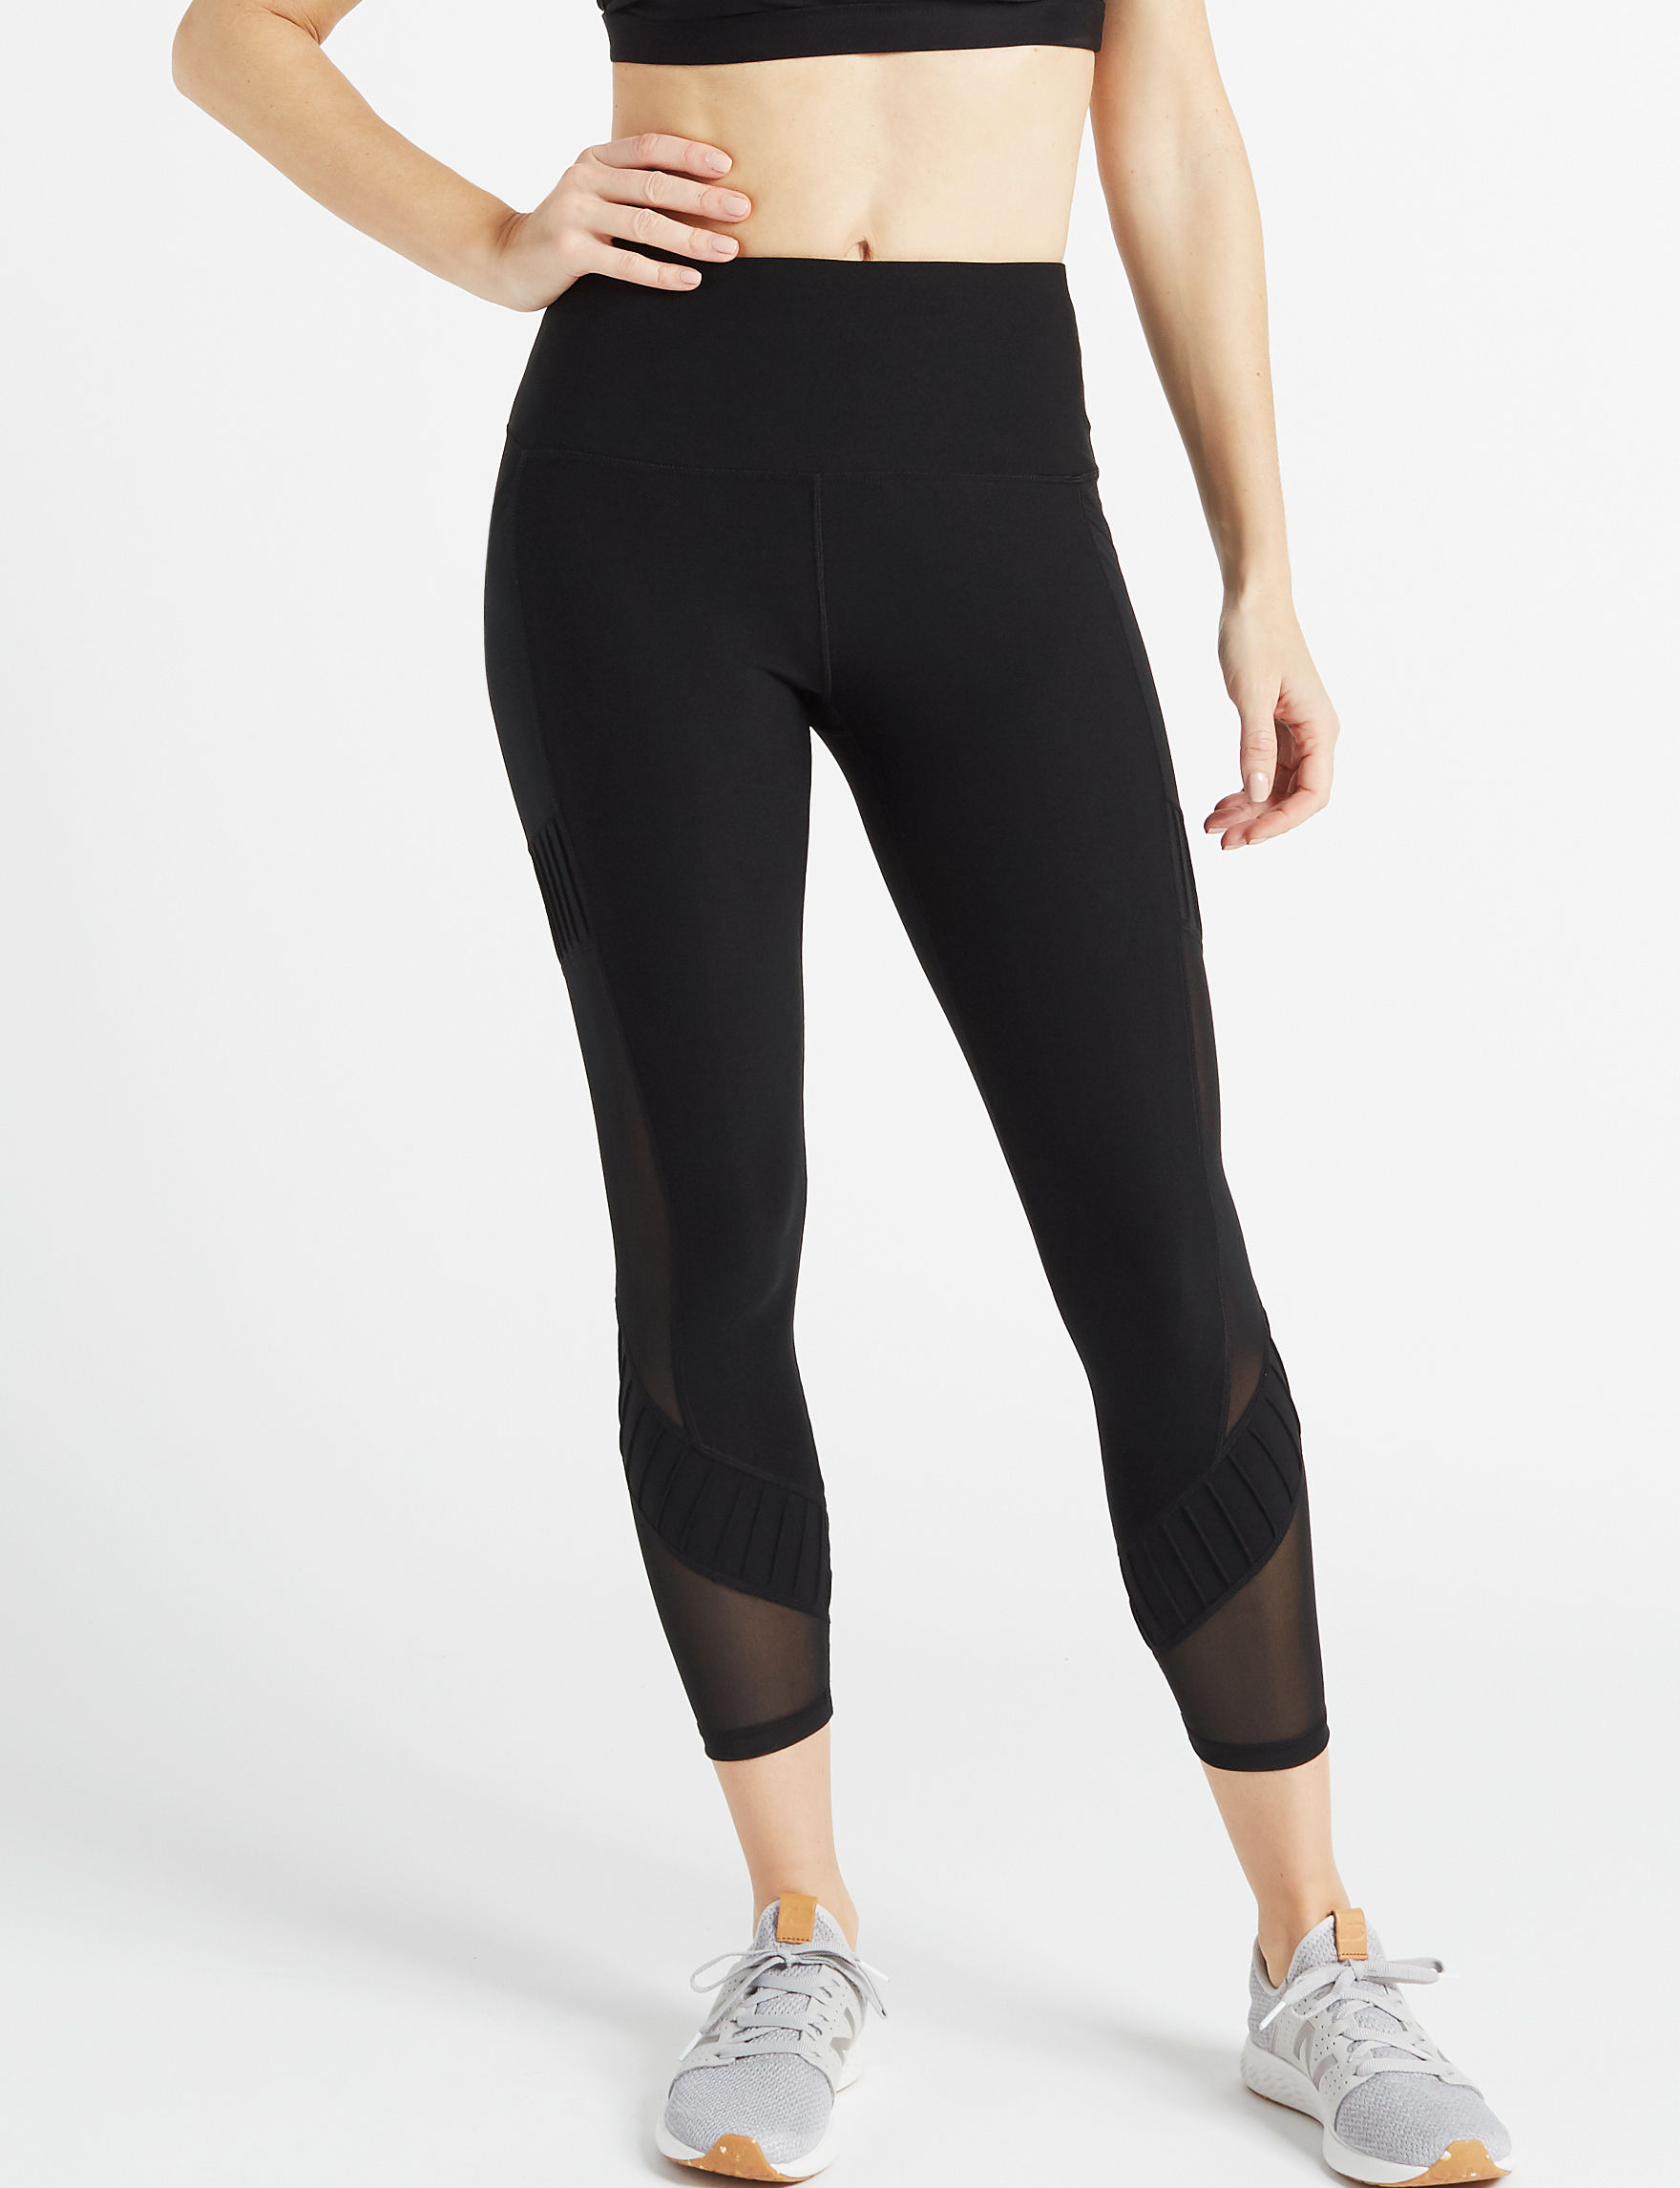 RBX Black Active Capris & Crops Leggings